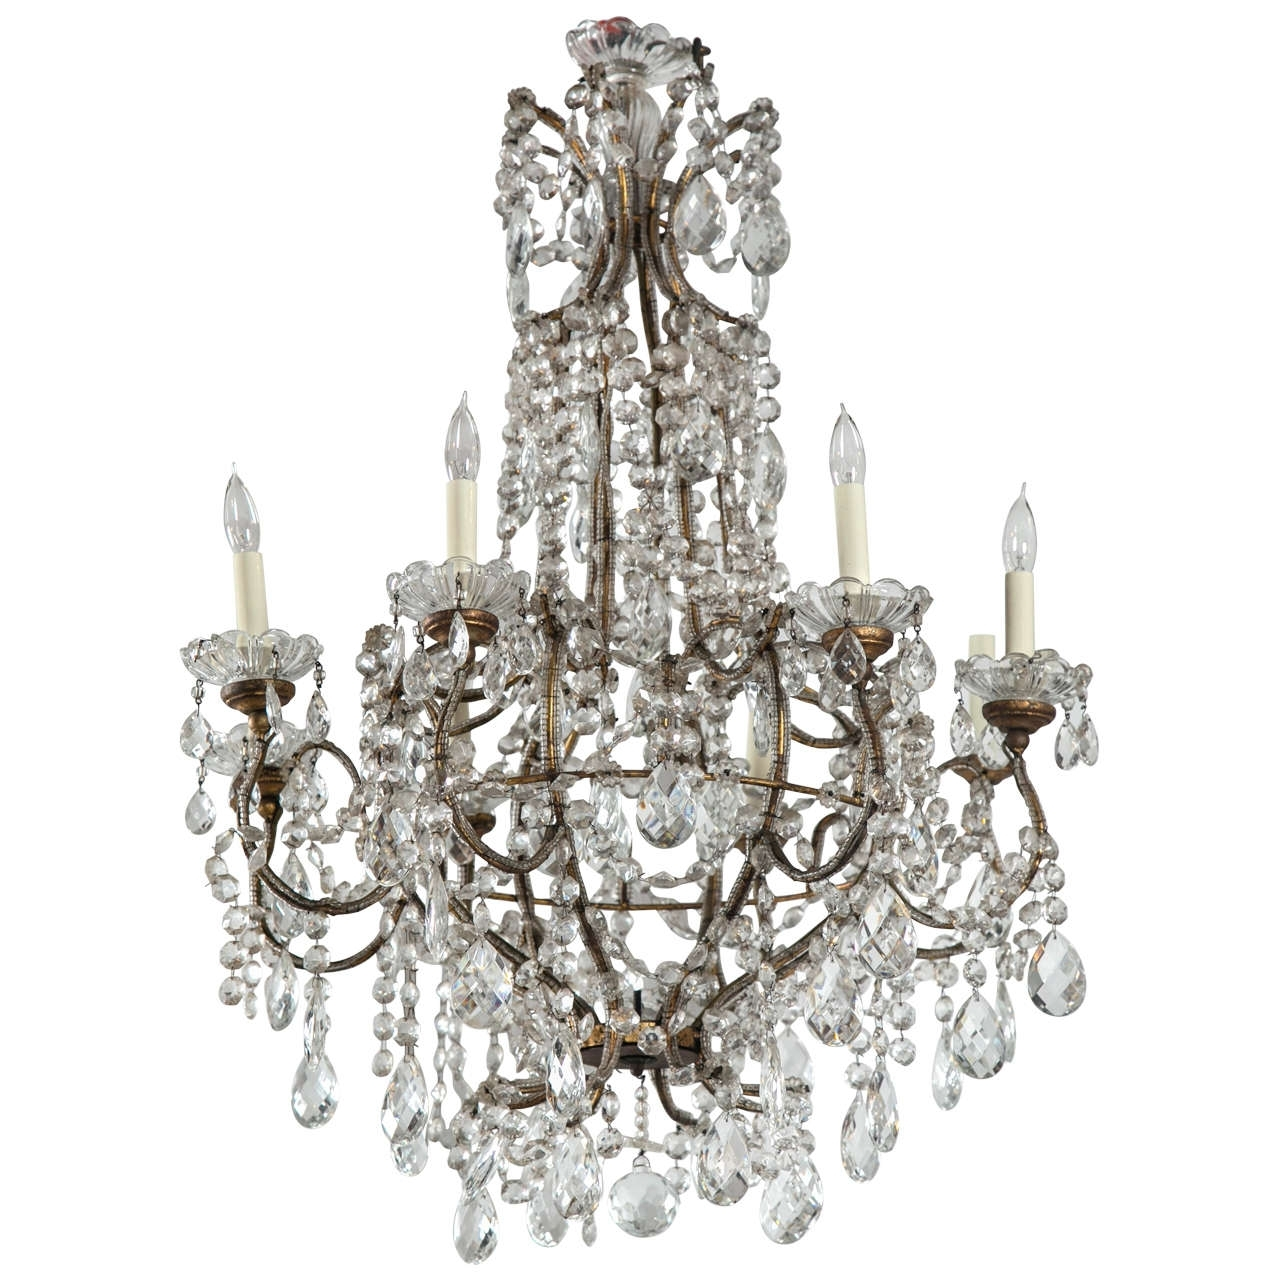 Widely Used French Style Chandeliers Delectable Crystal Modern Iron Shabby Chic With Antique French Chandeliers (View 19 of 20)